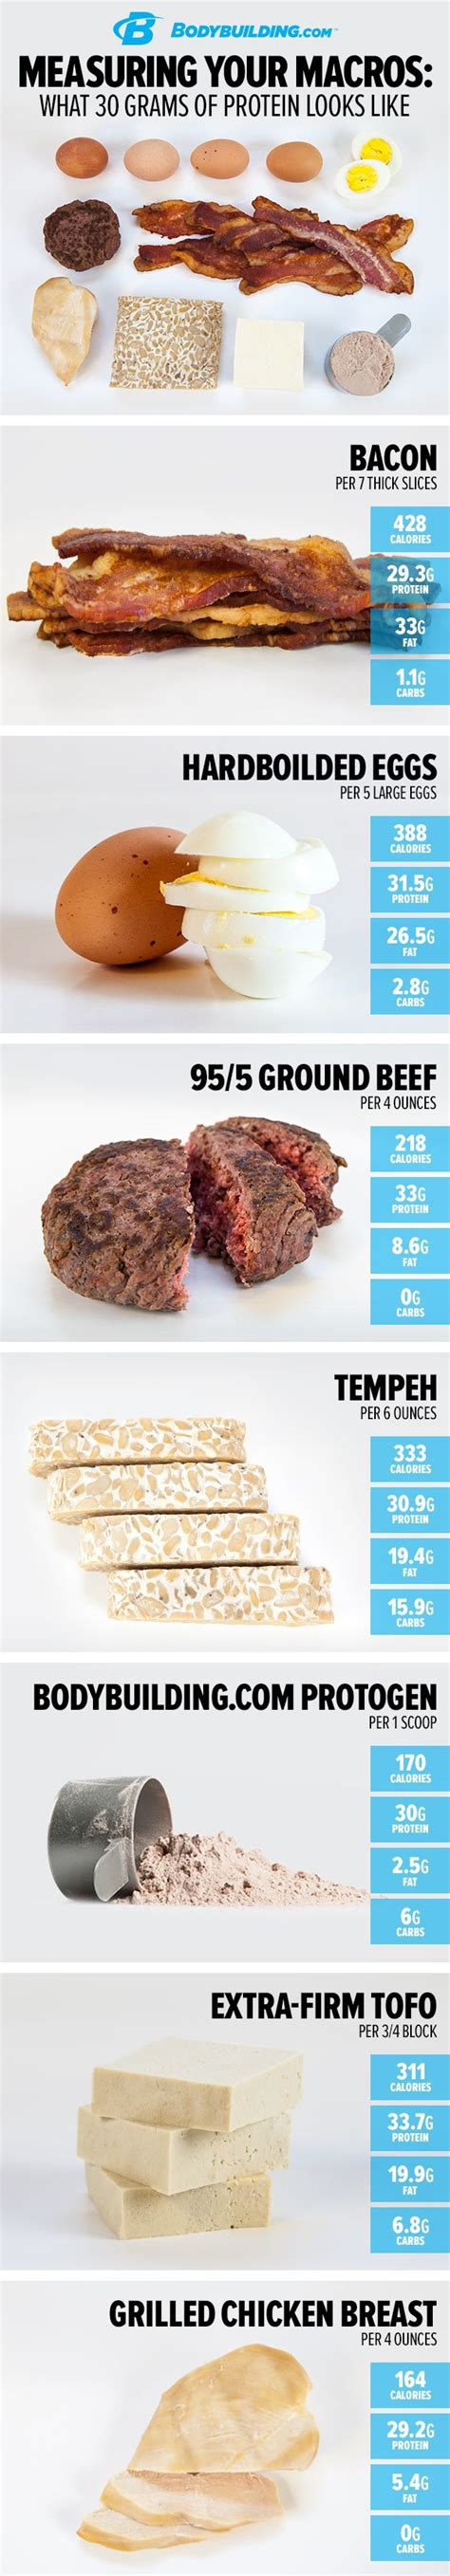 protein 30 grams measuring your macros what 30 grams of protein looks like